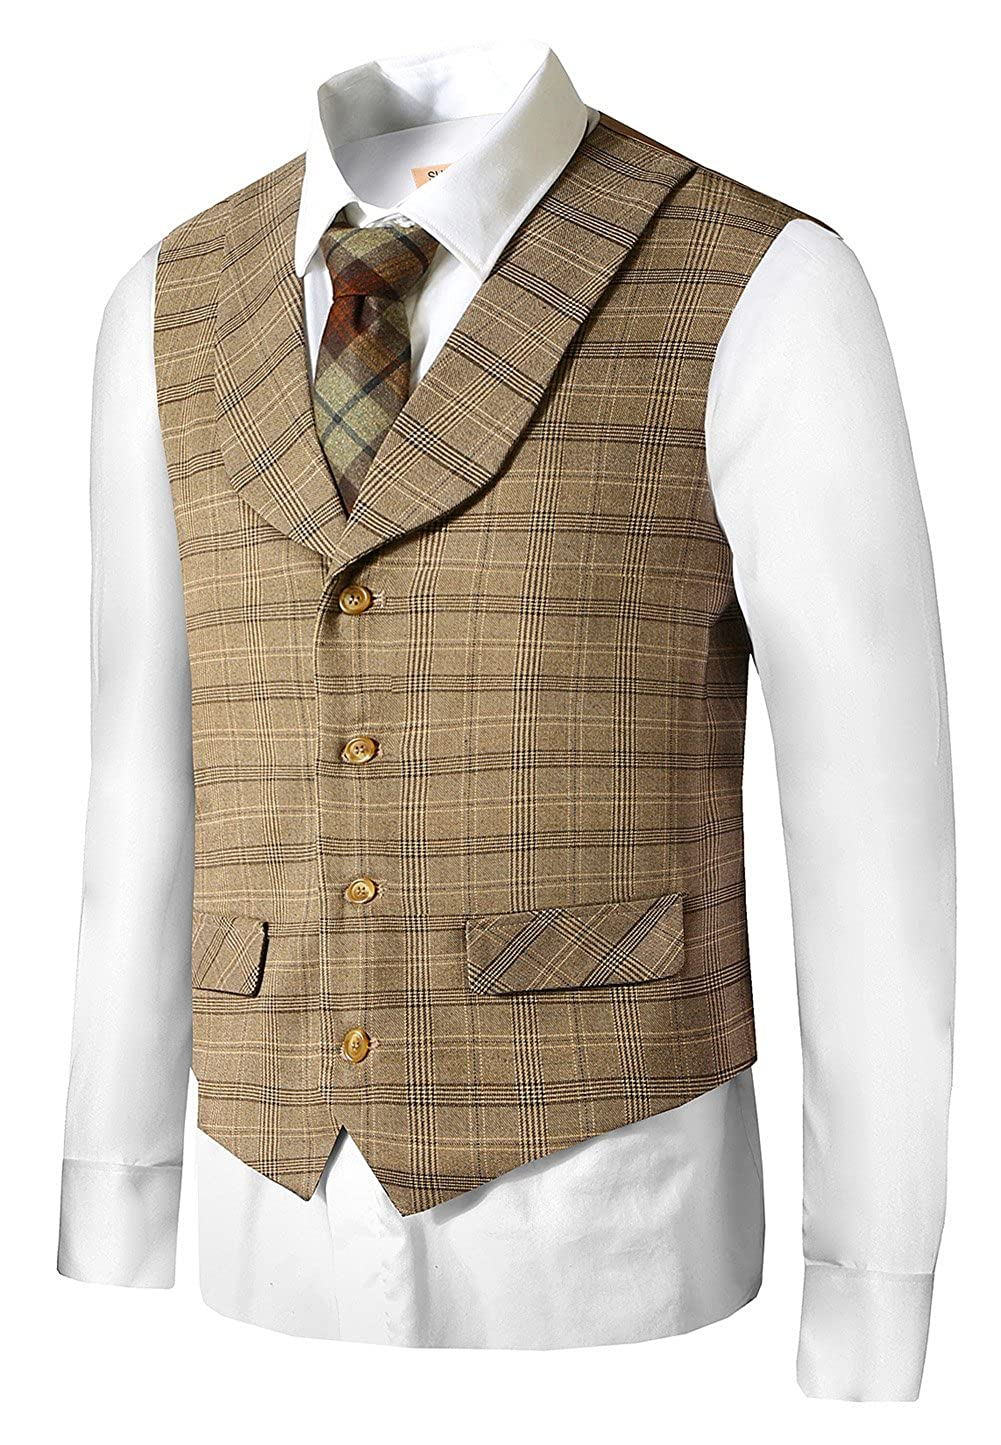 1900s Edwardian Men's Suits and Coats Hanayome Mens Gentleman Top Design Casual Waistcoat Business Suit Vest VS17 $28.50 AT vintagedancer.com